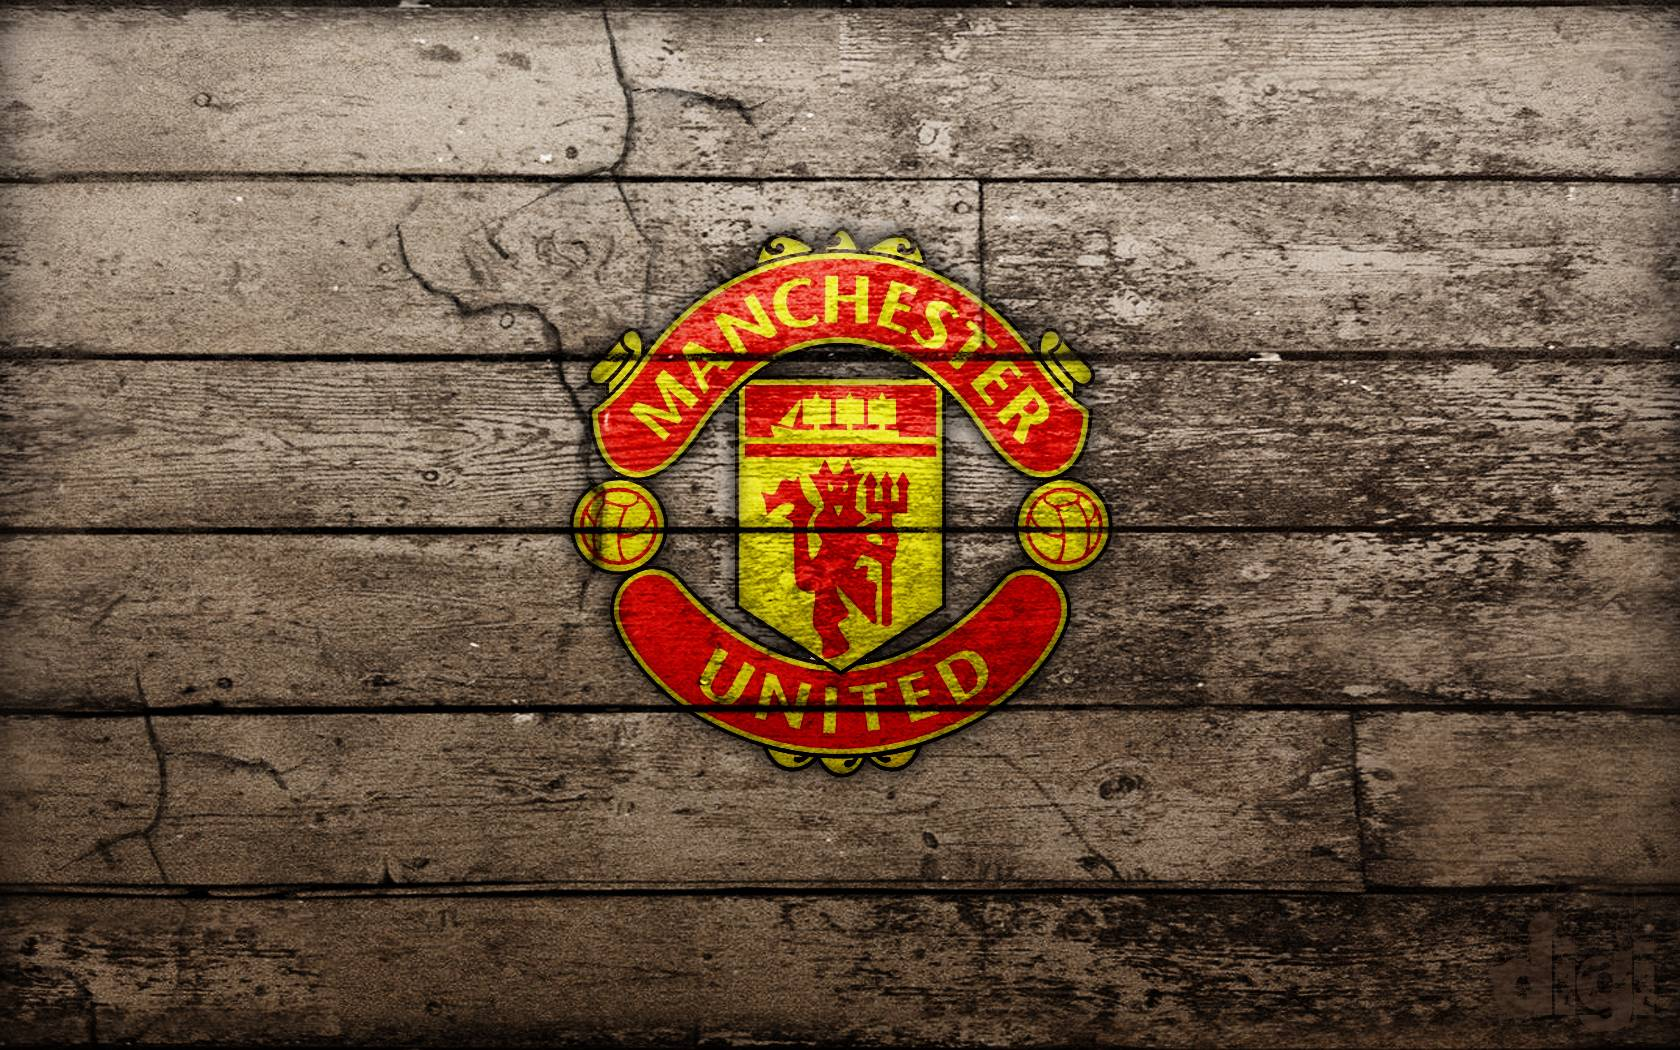 Manchester united wallpapers 3d 2015 wallpaper cave - Cool man united wallpapers ...